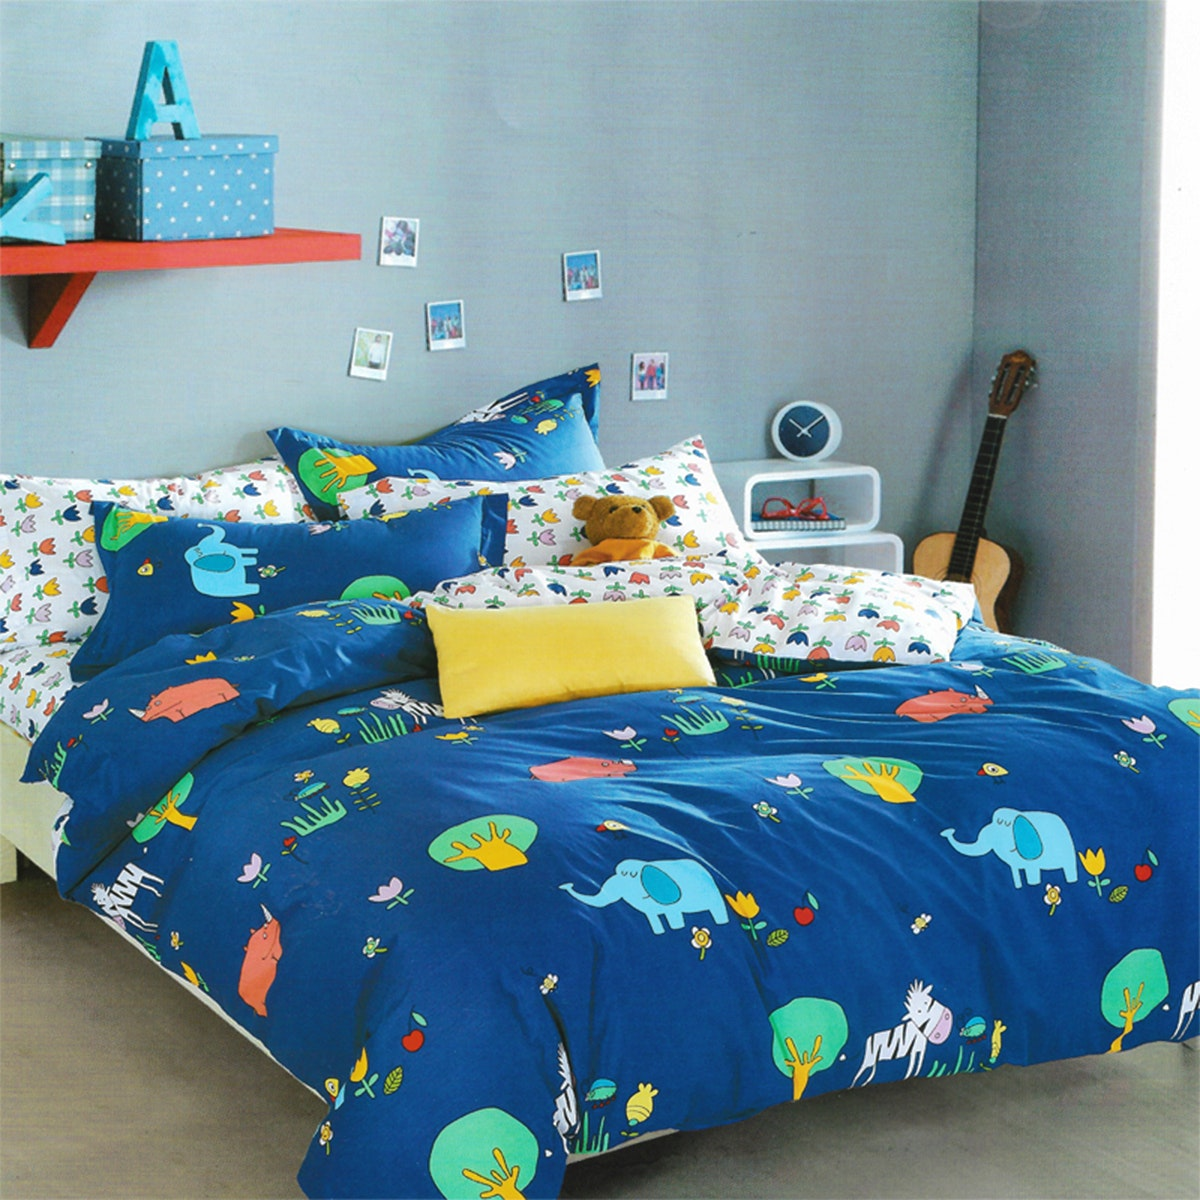 Sleep Buddy Set Sprei dan Bed Cover Baby Elephants Cotton Sateen 160x200x30